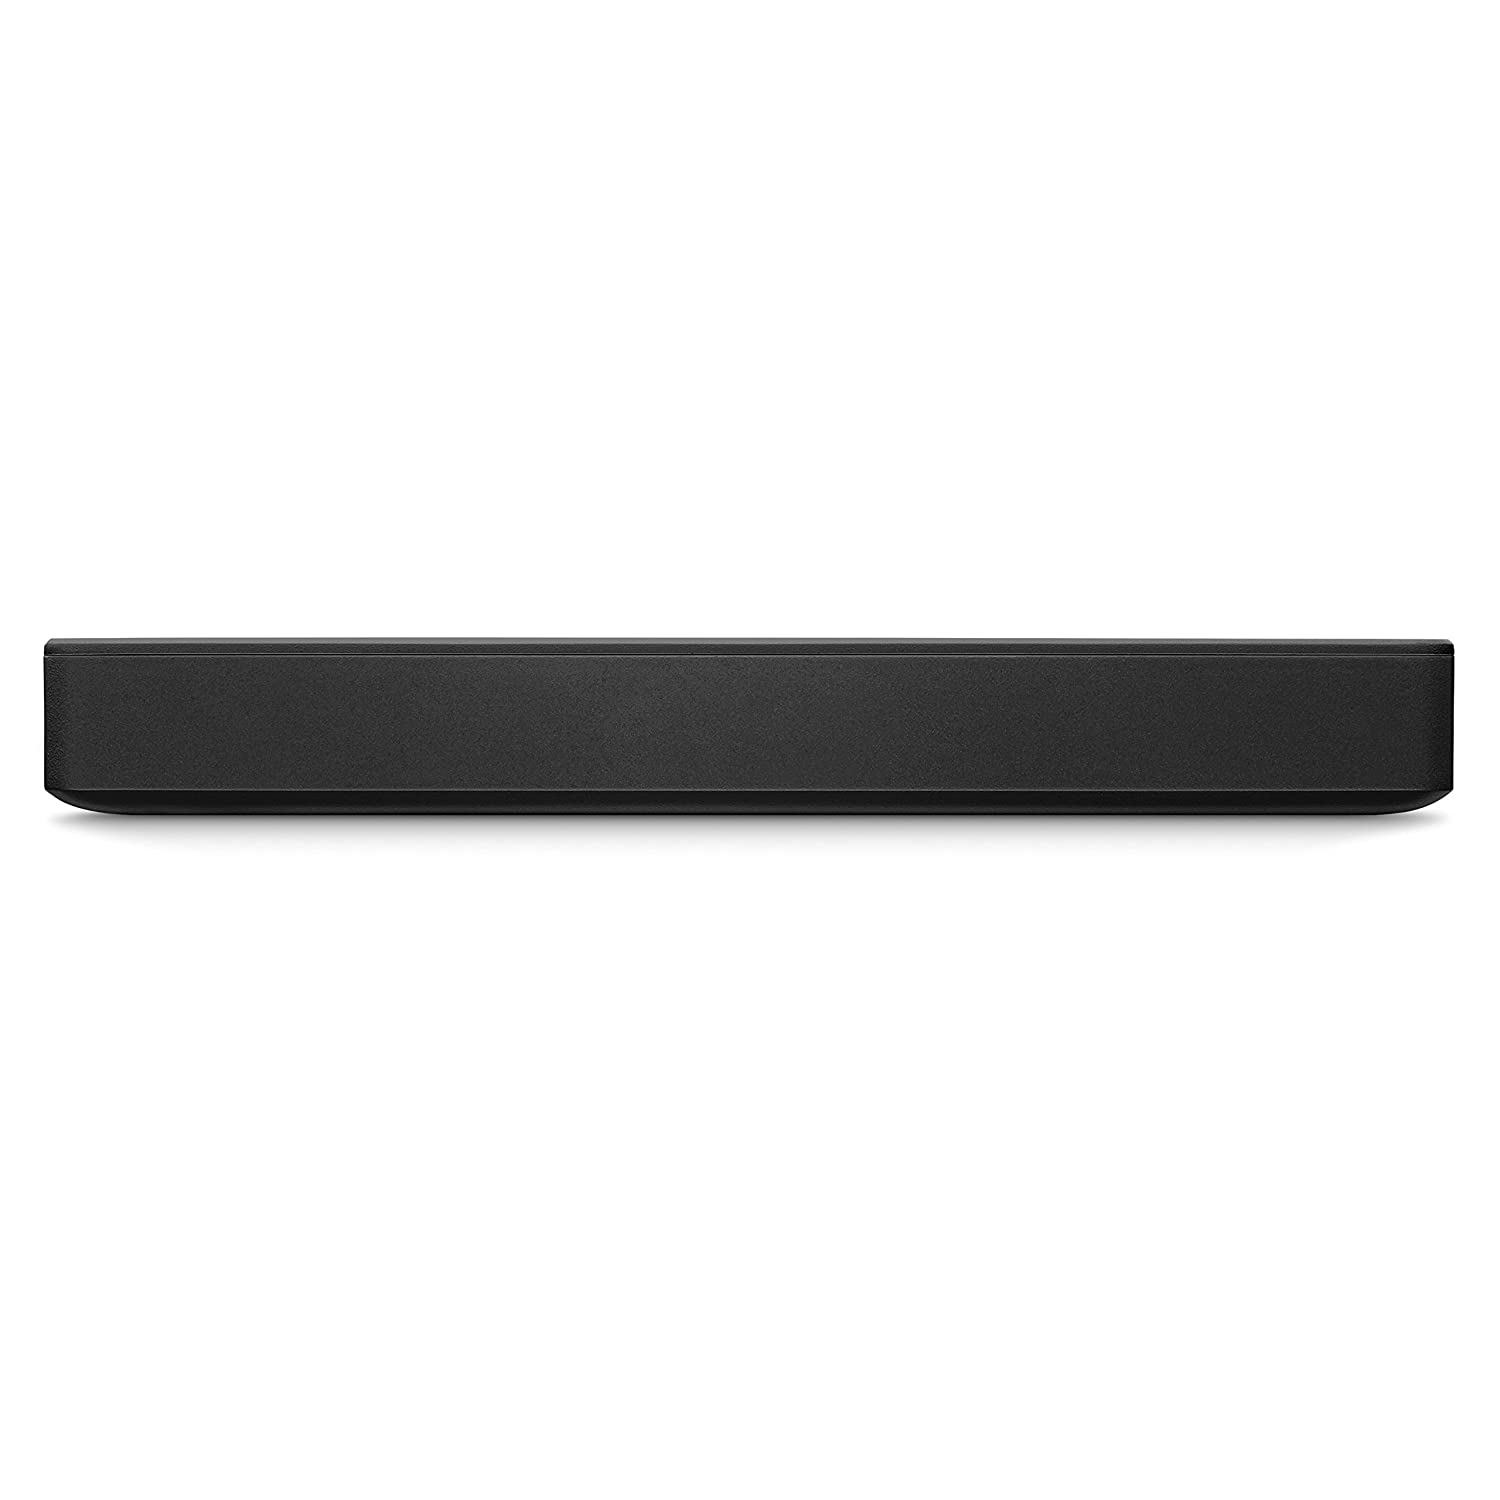 Seagate 3 TB Expansion USB 3.0 Desktop 3.5 Inch External Hard Drive for PC STEB3000200 Xbox One and PlayStation 4